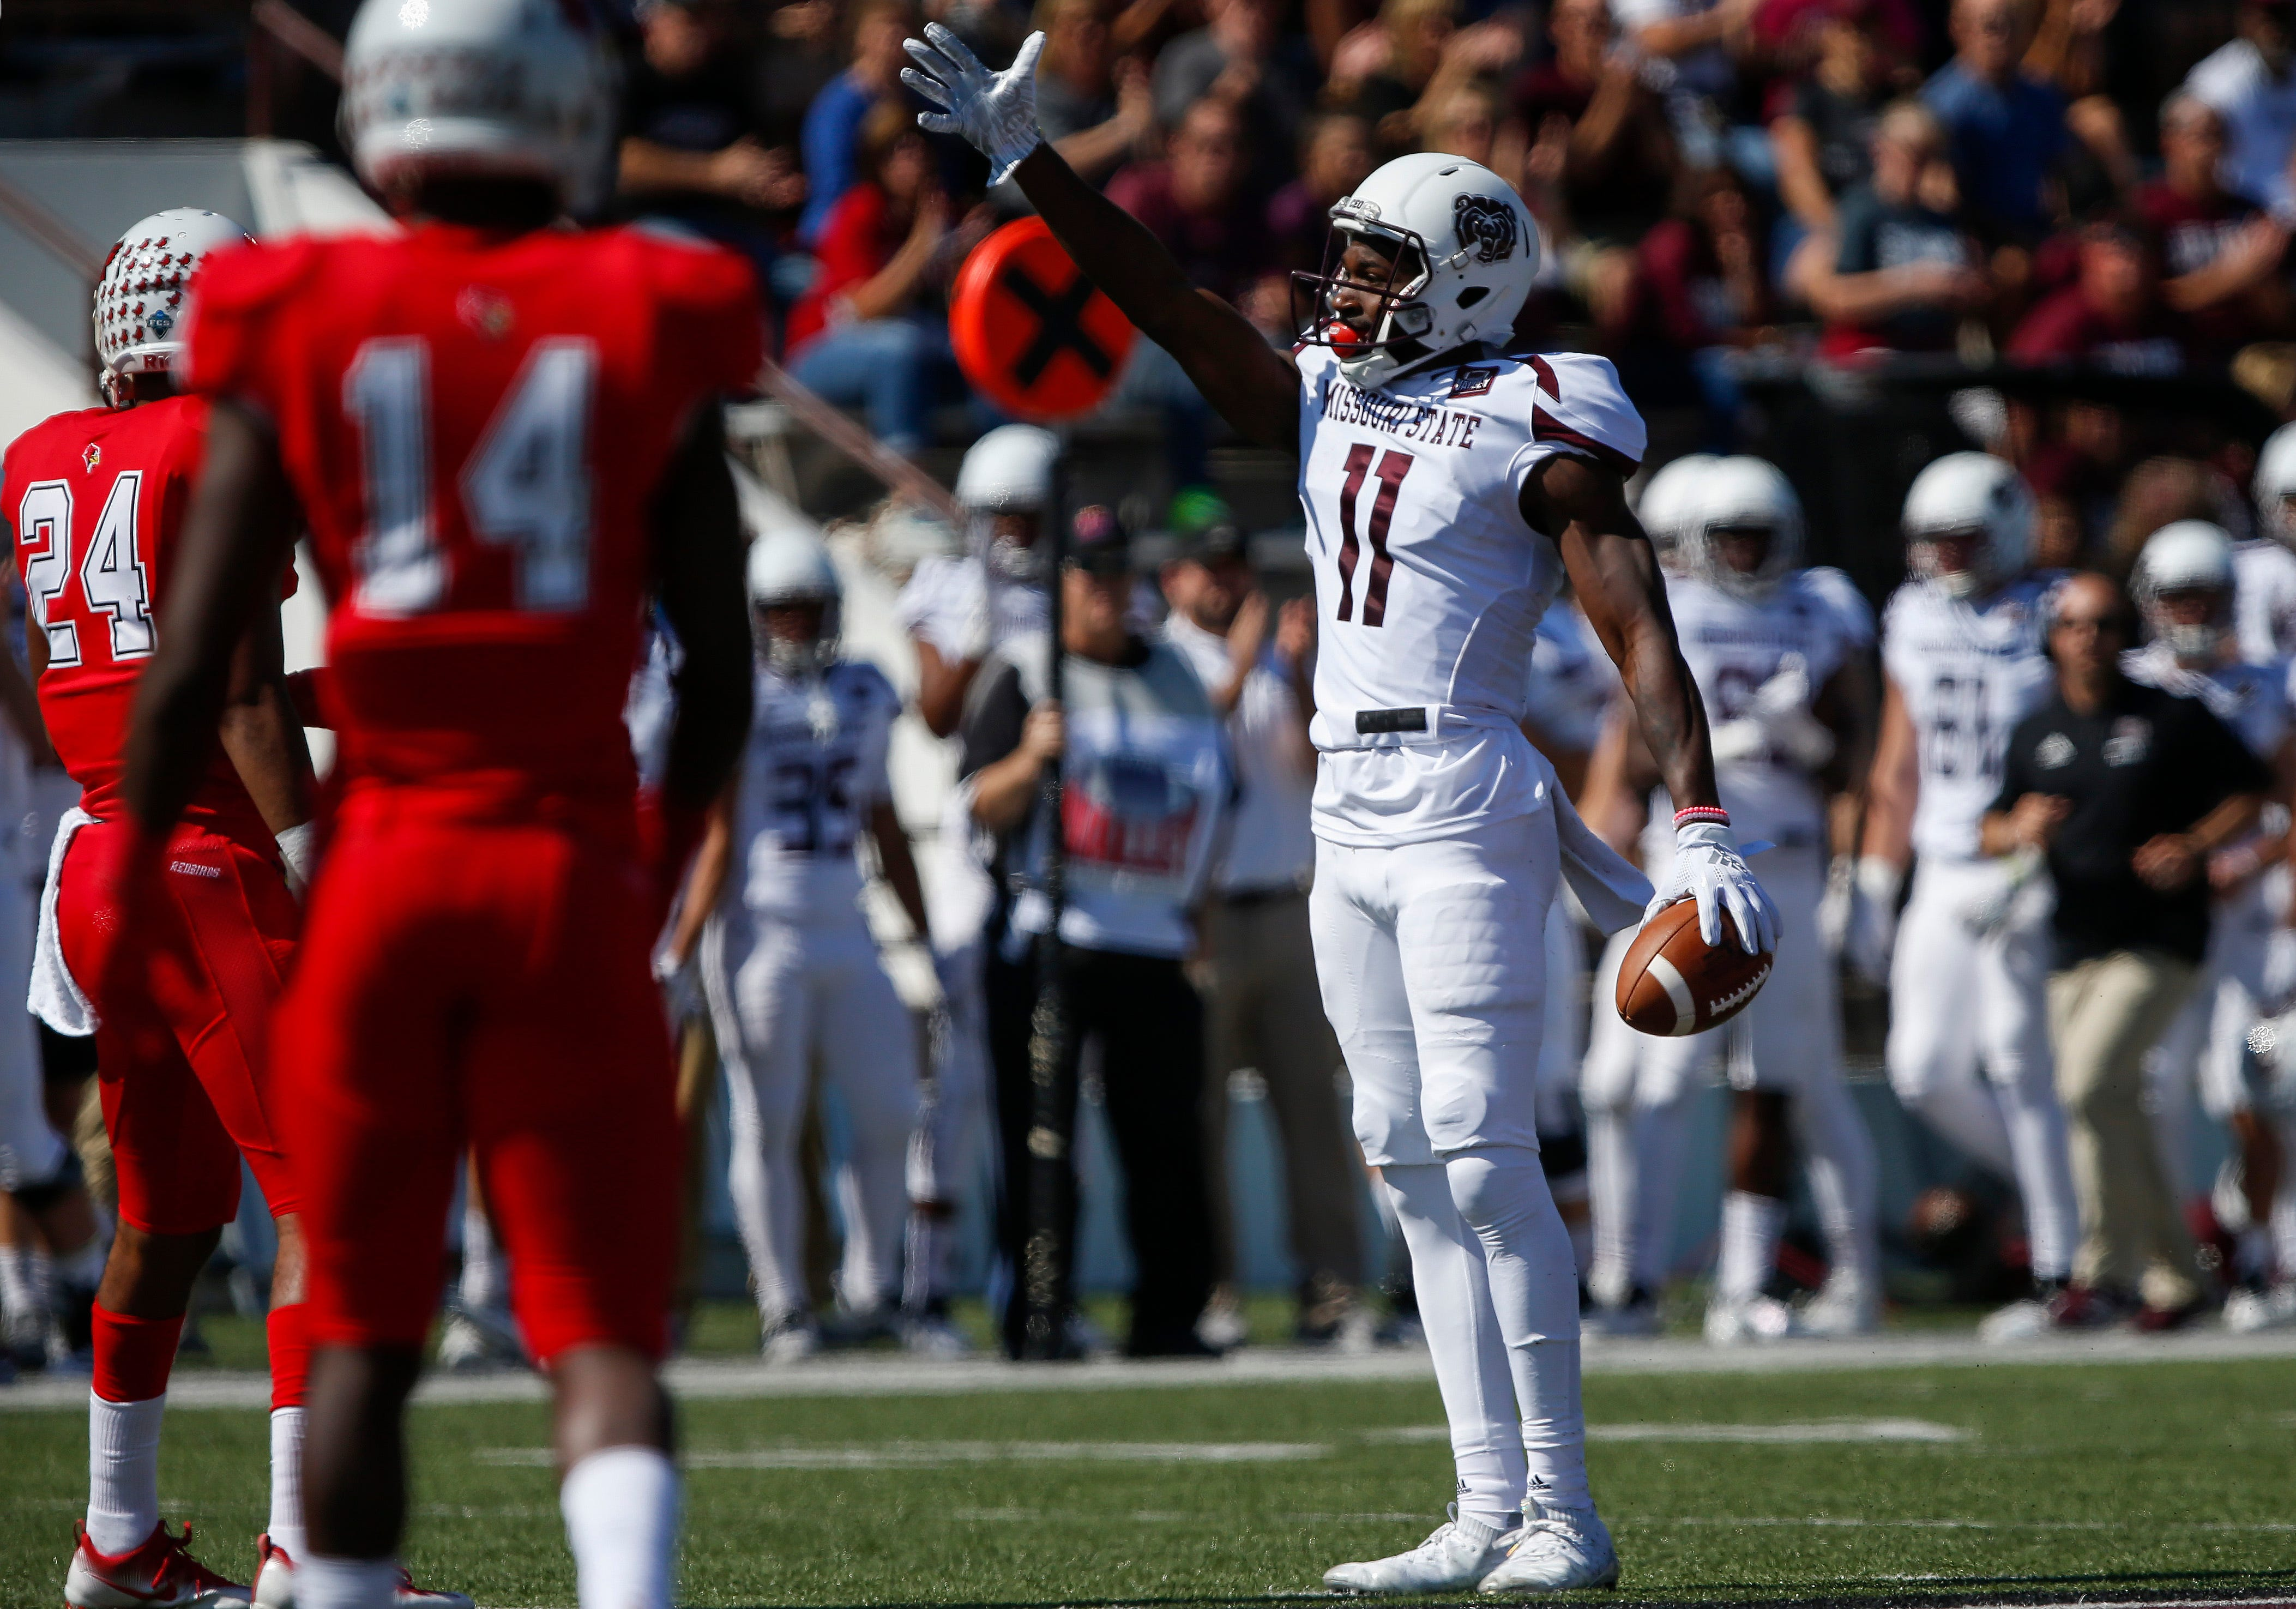 Tyler Currie points to indicate a first down during the Missouri State Bears' game against the Illinois State Redbirds at Plaster Stadium on Saturday, Sept. 29, 2018.